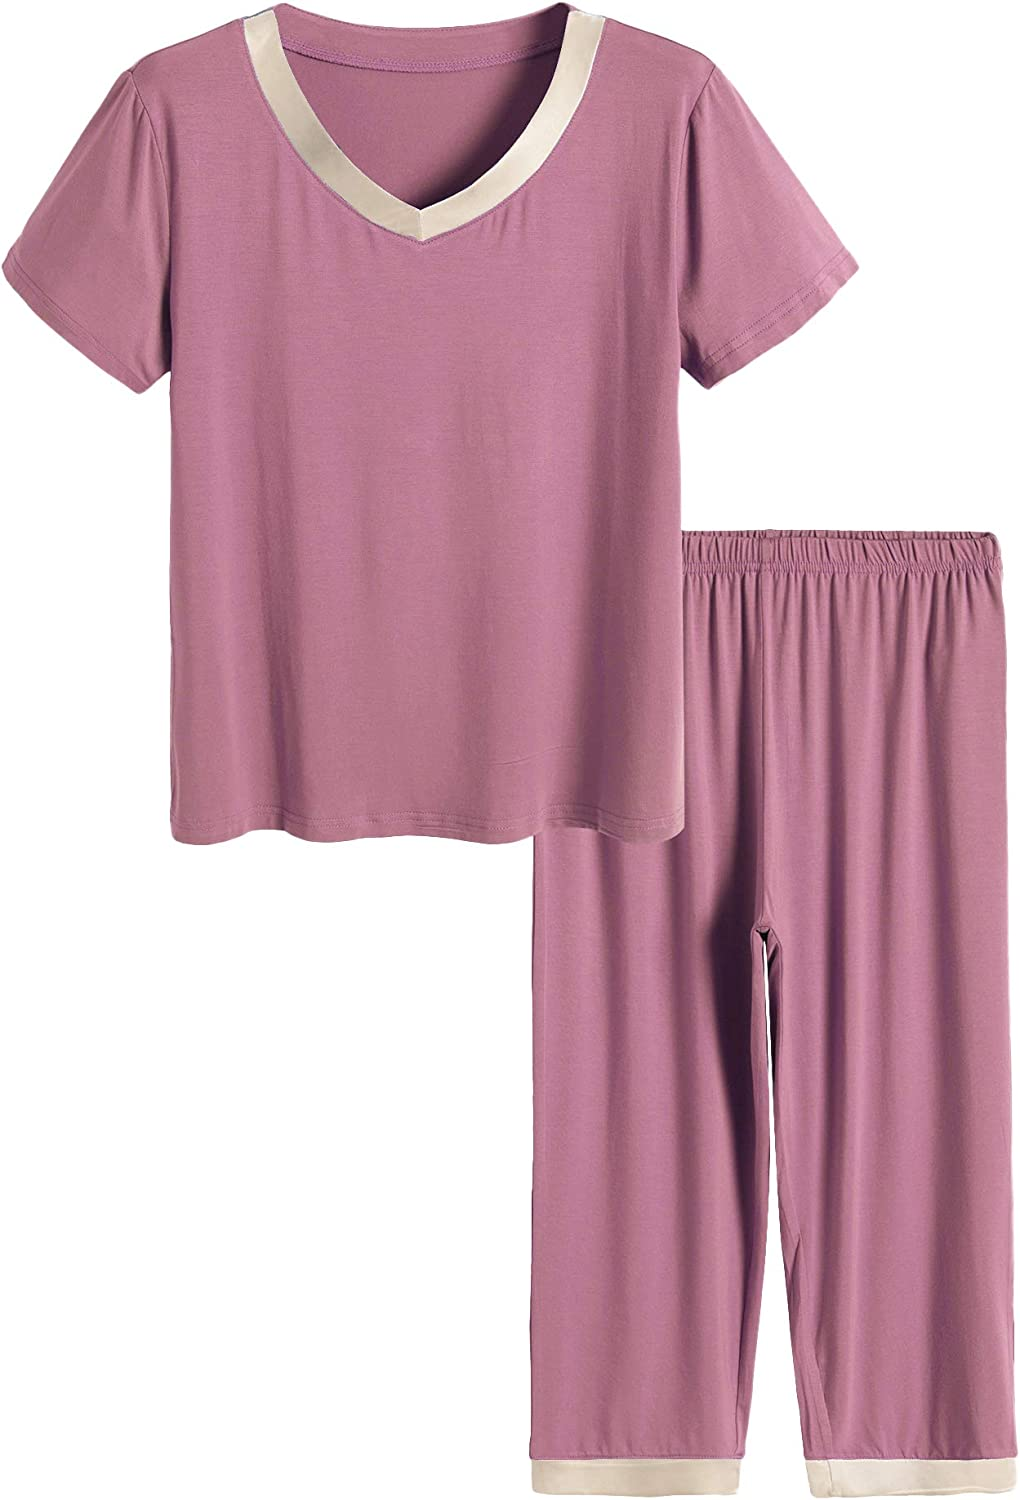 Latuza Women's Sleepwear Tops with Capri Pants Pajama Sets